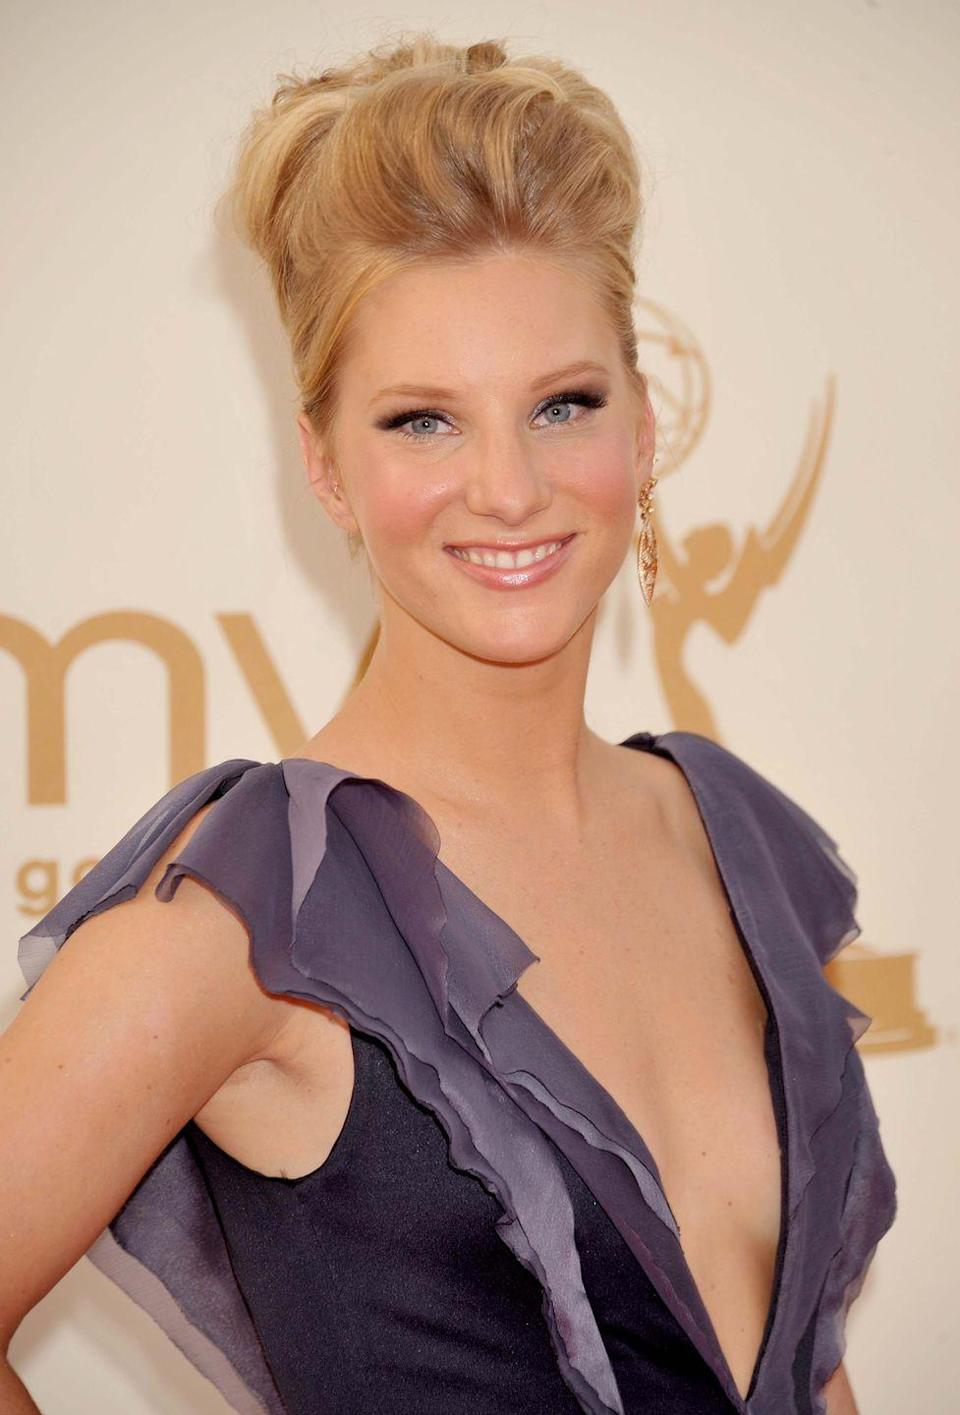 """<p>Glee star and dancer Heather Morris grew out of her breast implants, saying it was something she wanted when she was younger. '[They] were something I thought I wanted when I was younger, and now I don't,' she told <a href=""""https://www.fitnessmagazine.com/workout/real-plans/celebrity/glee-heather-morris-fitness-magazine-interview/"""" rel=""""nofollow noopener"""" target=""""_blank"""" data-ylk=""""slk:Fitness magazine"""" class=""""link rapid-noclick-resp"""">Fitness magazine</a> in 2011. 'It was hard being active with them, because my chest was always sore. It hurt a lot, and I didn't like always being in pain, so they had to go.'</p>"""